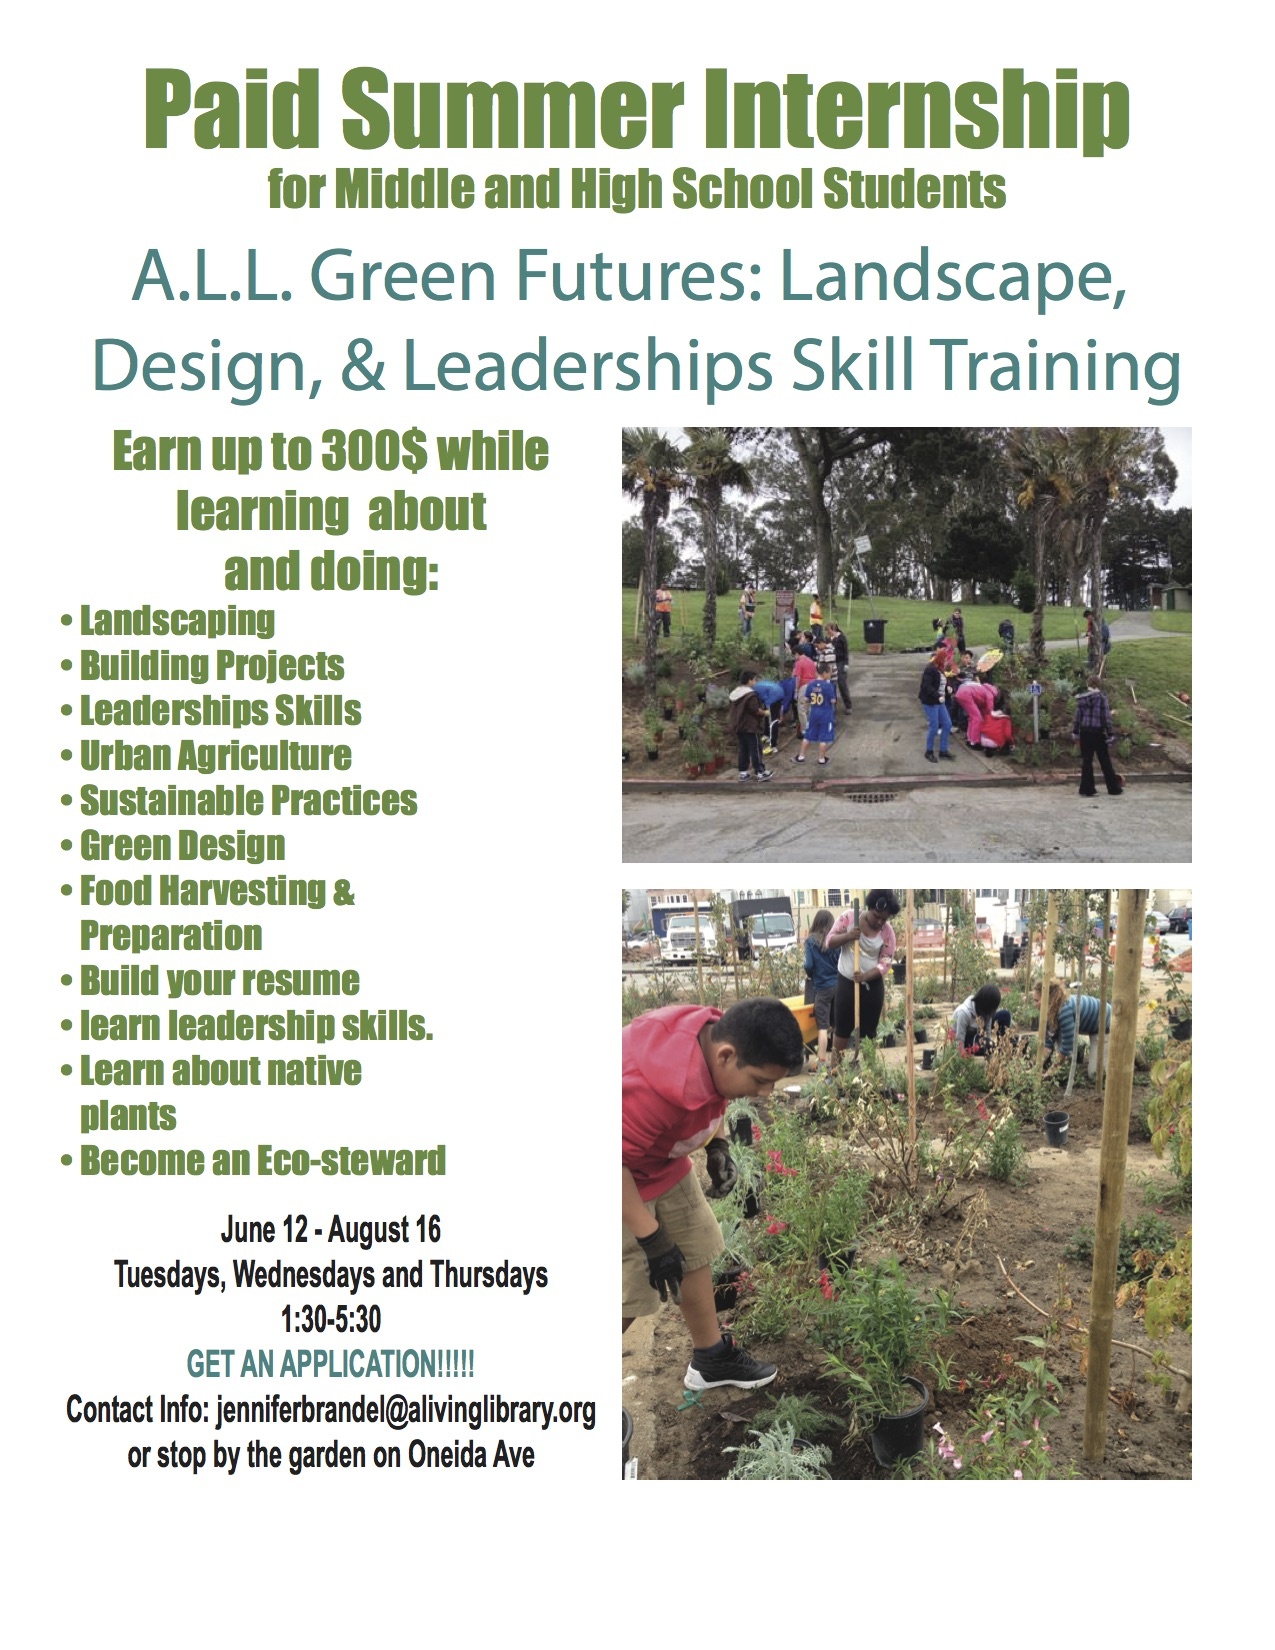 Develop Your Green Skills in A.L.L. Green Futures Paid Summer Internship Program